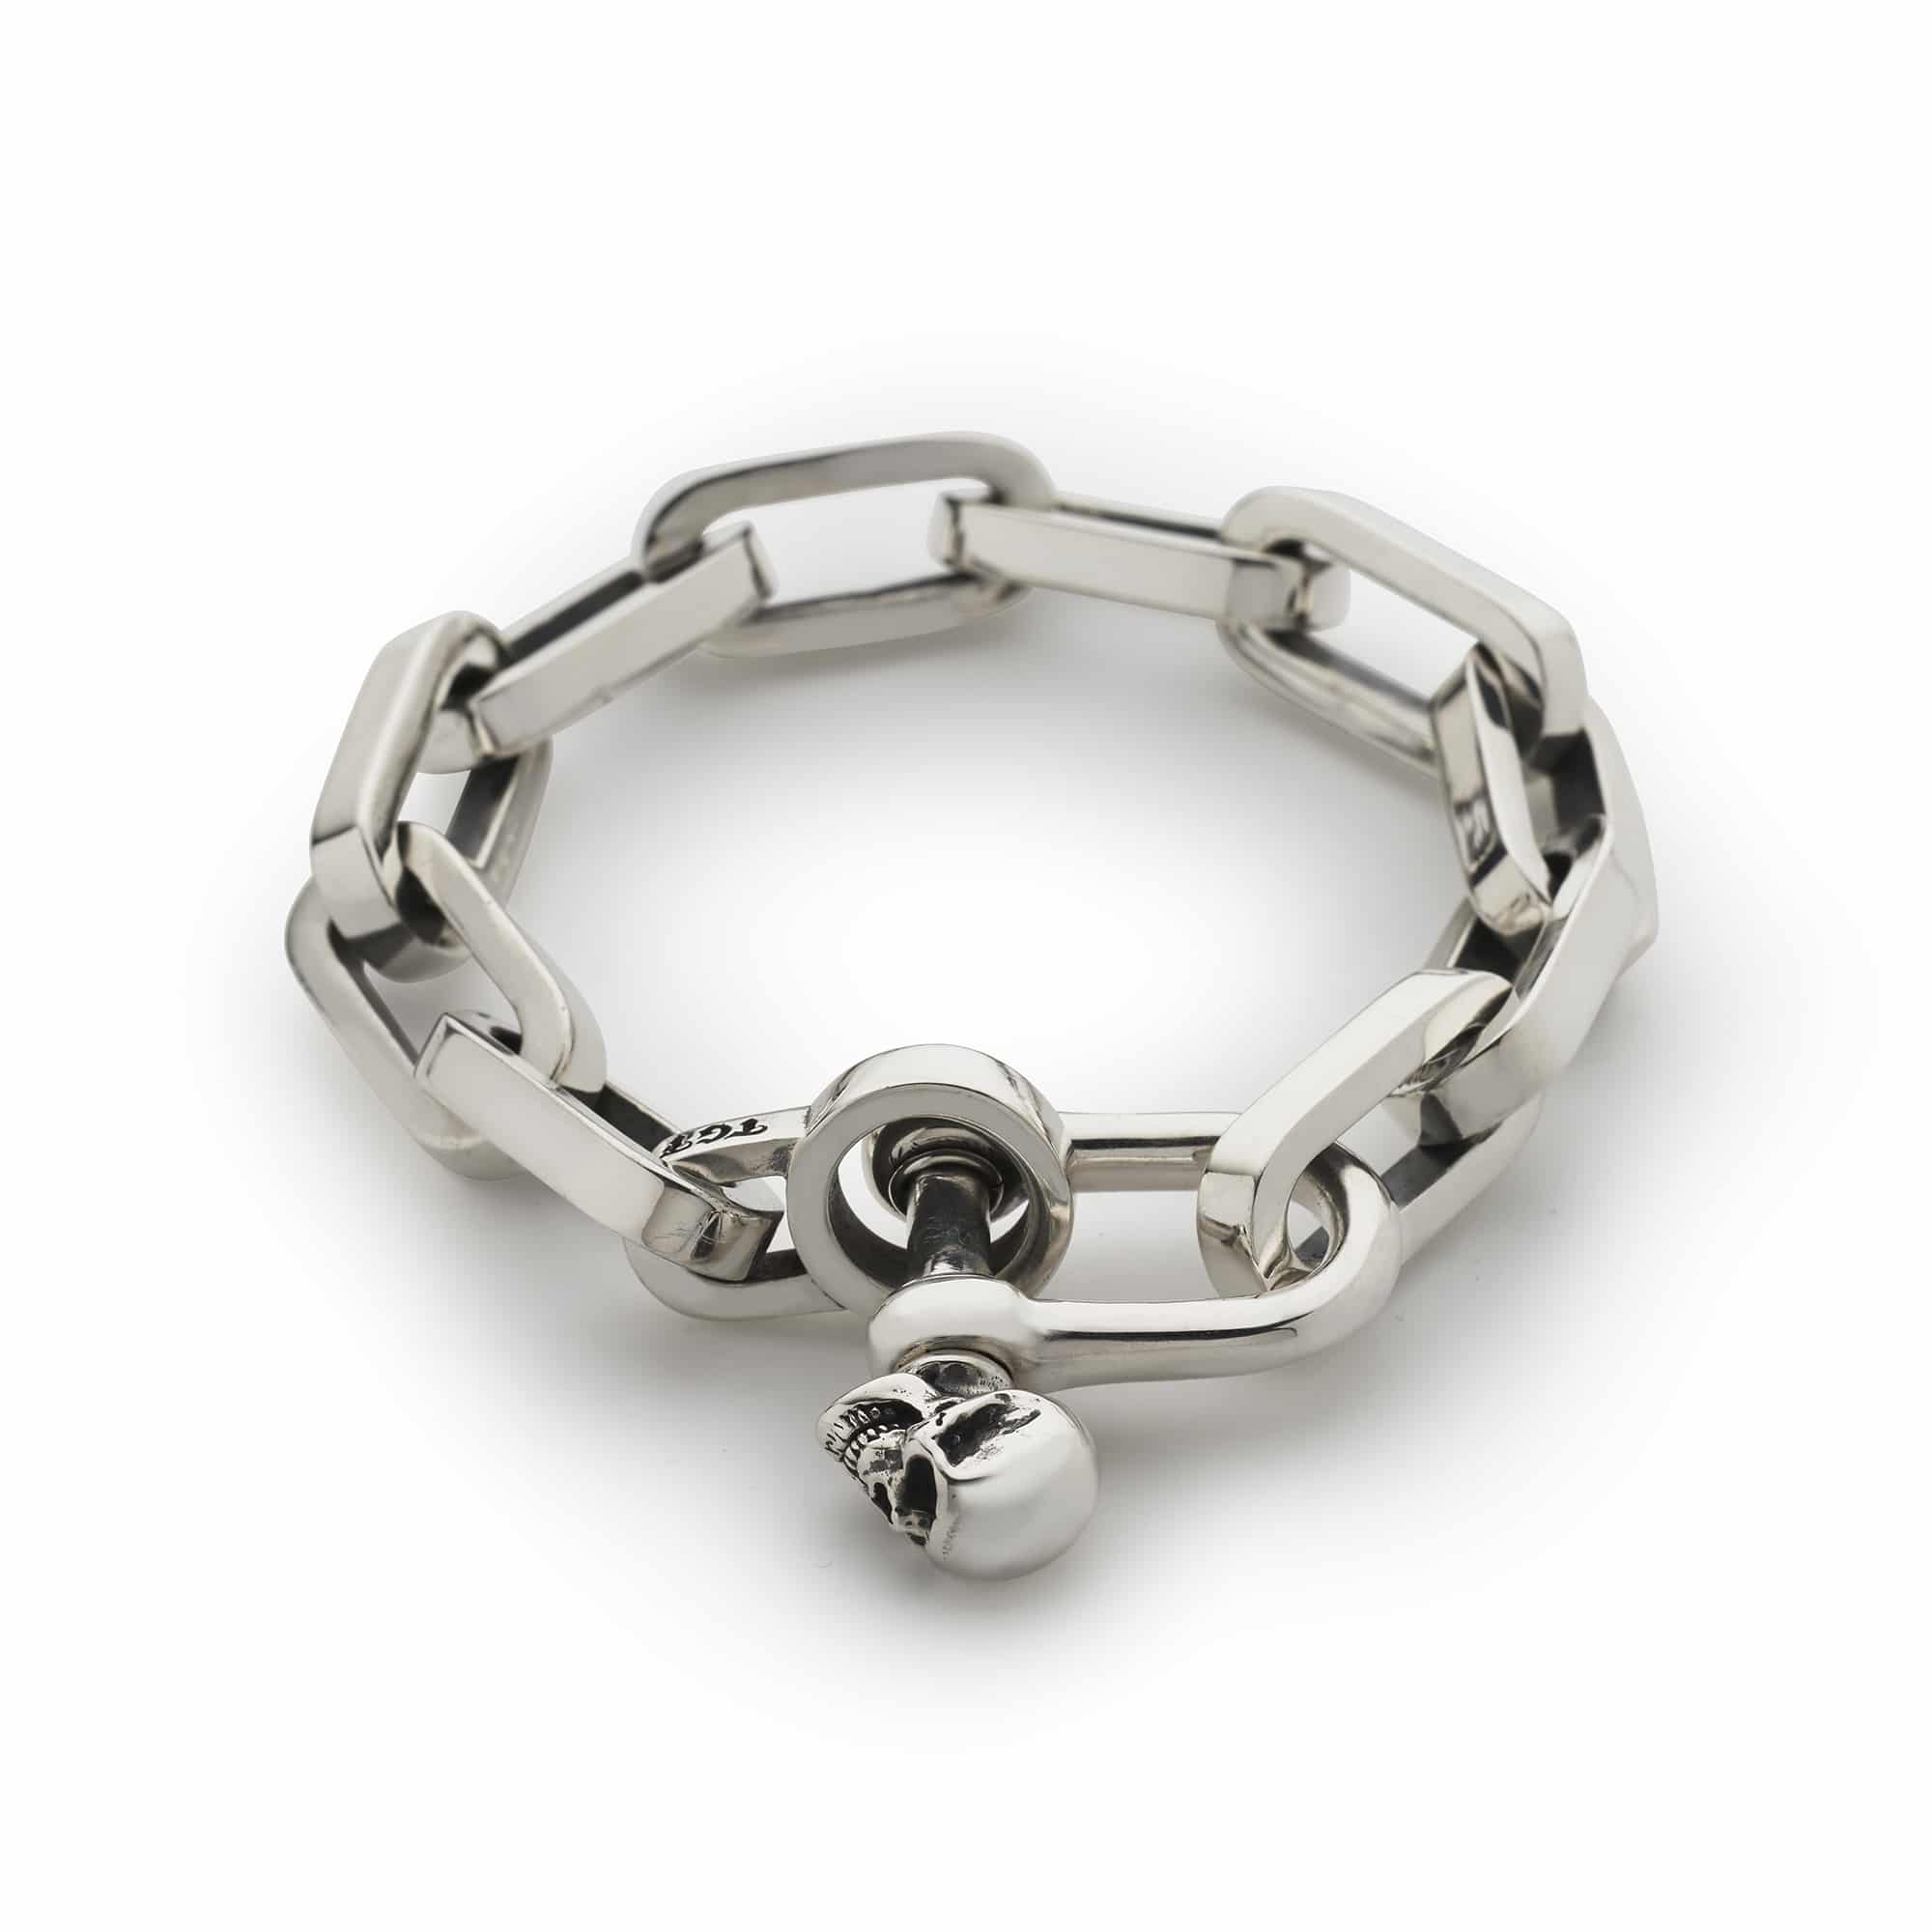 In Chains: The Shackle Bracelet